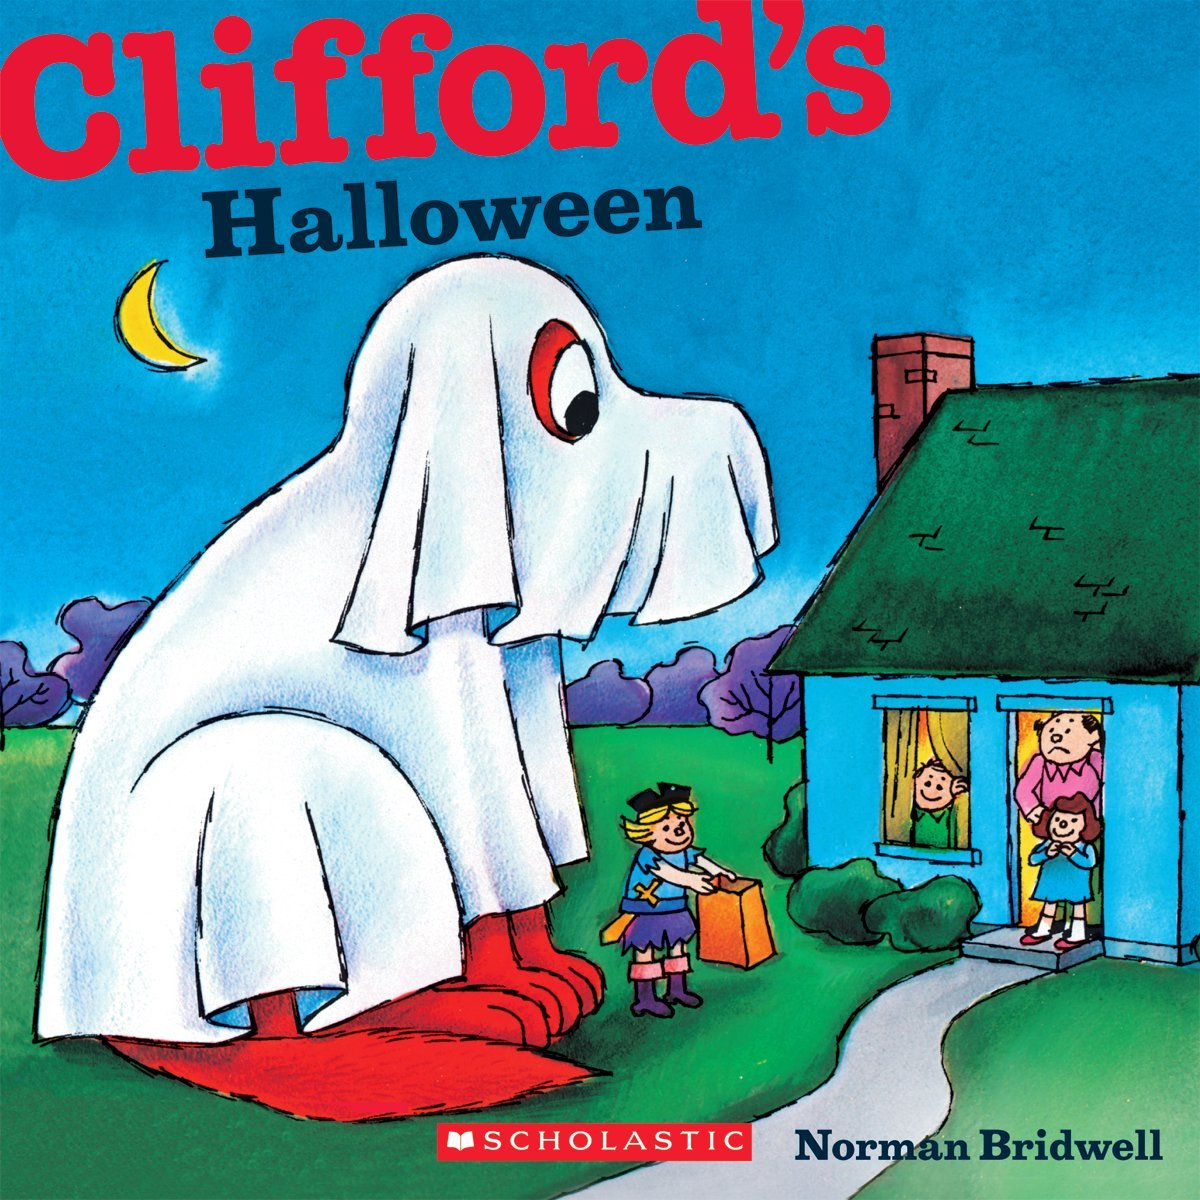 cliffords halloween book